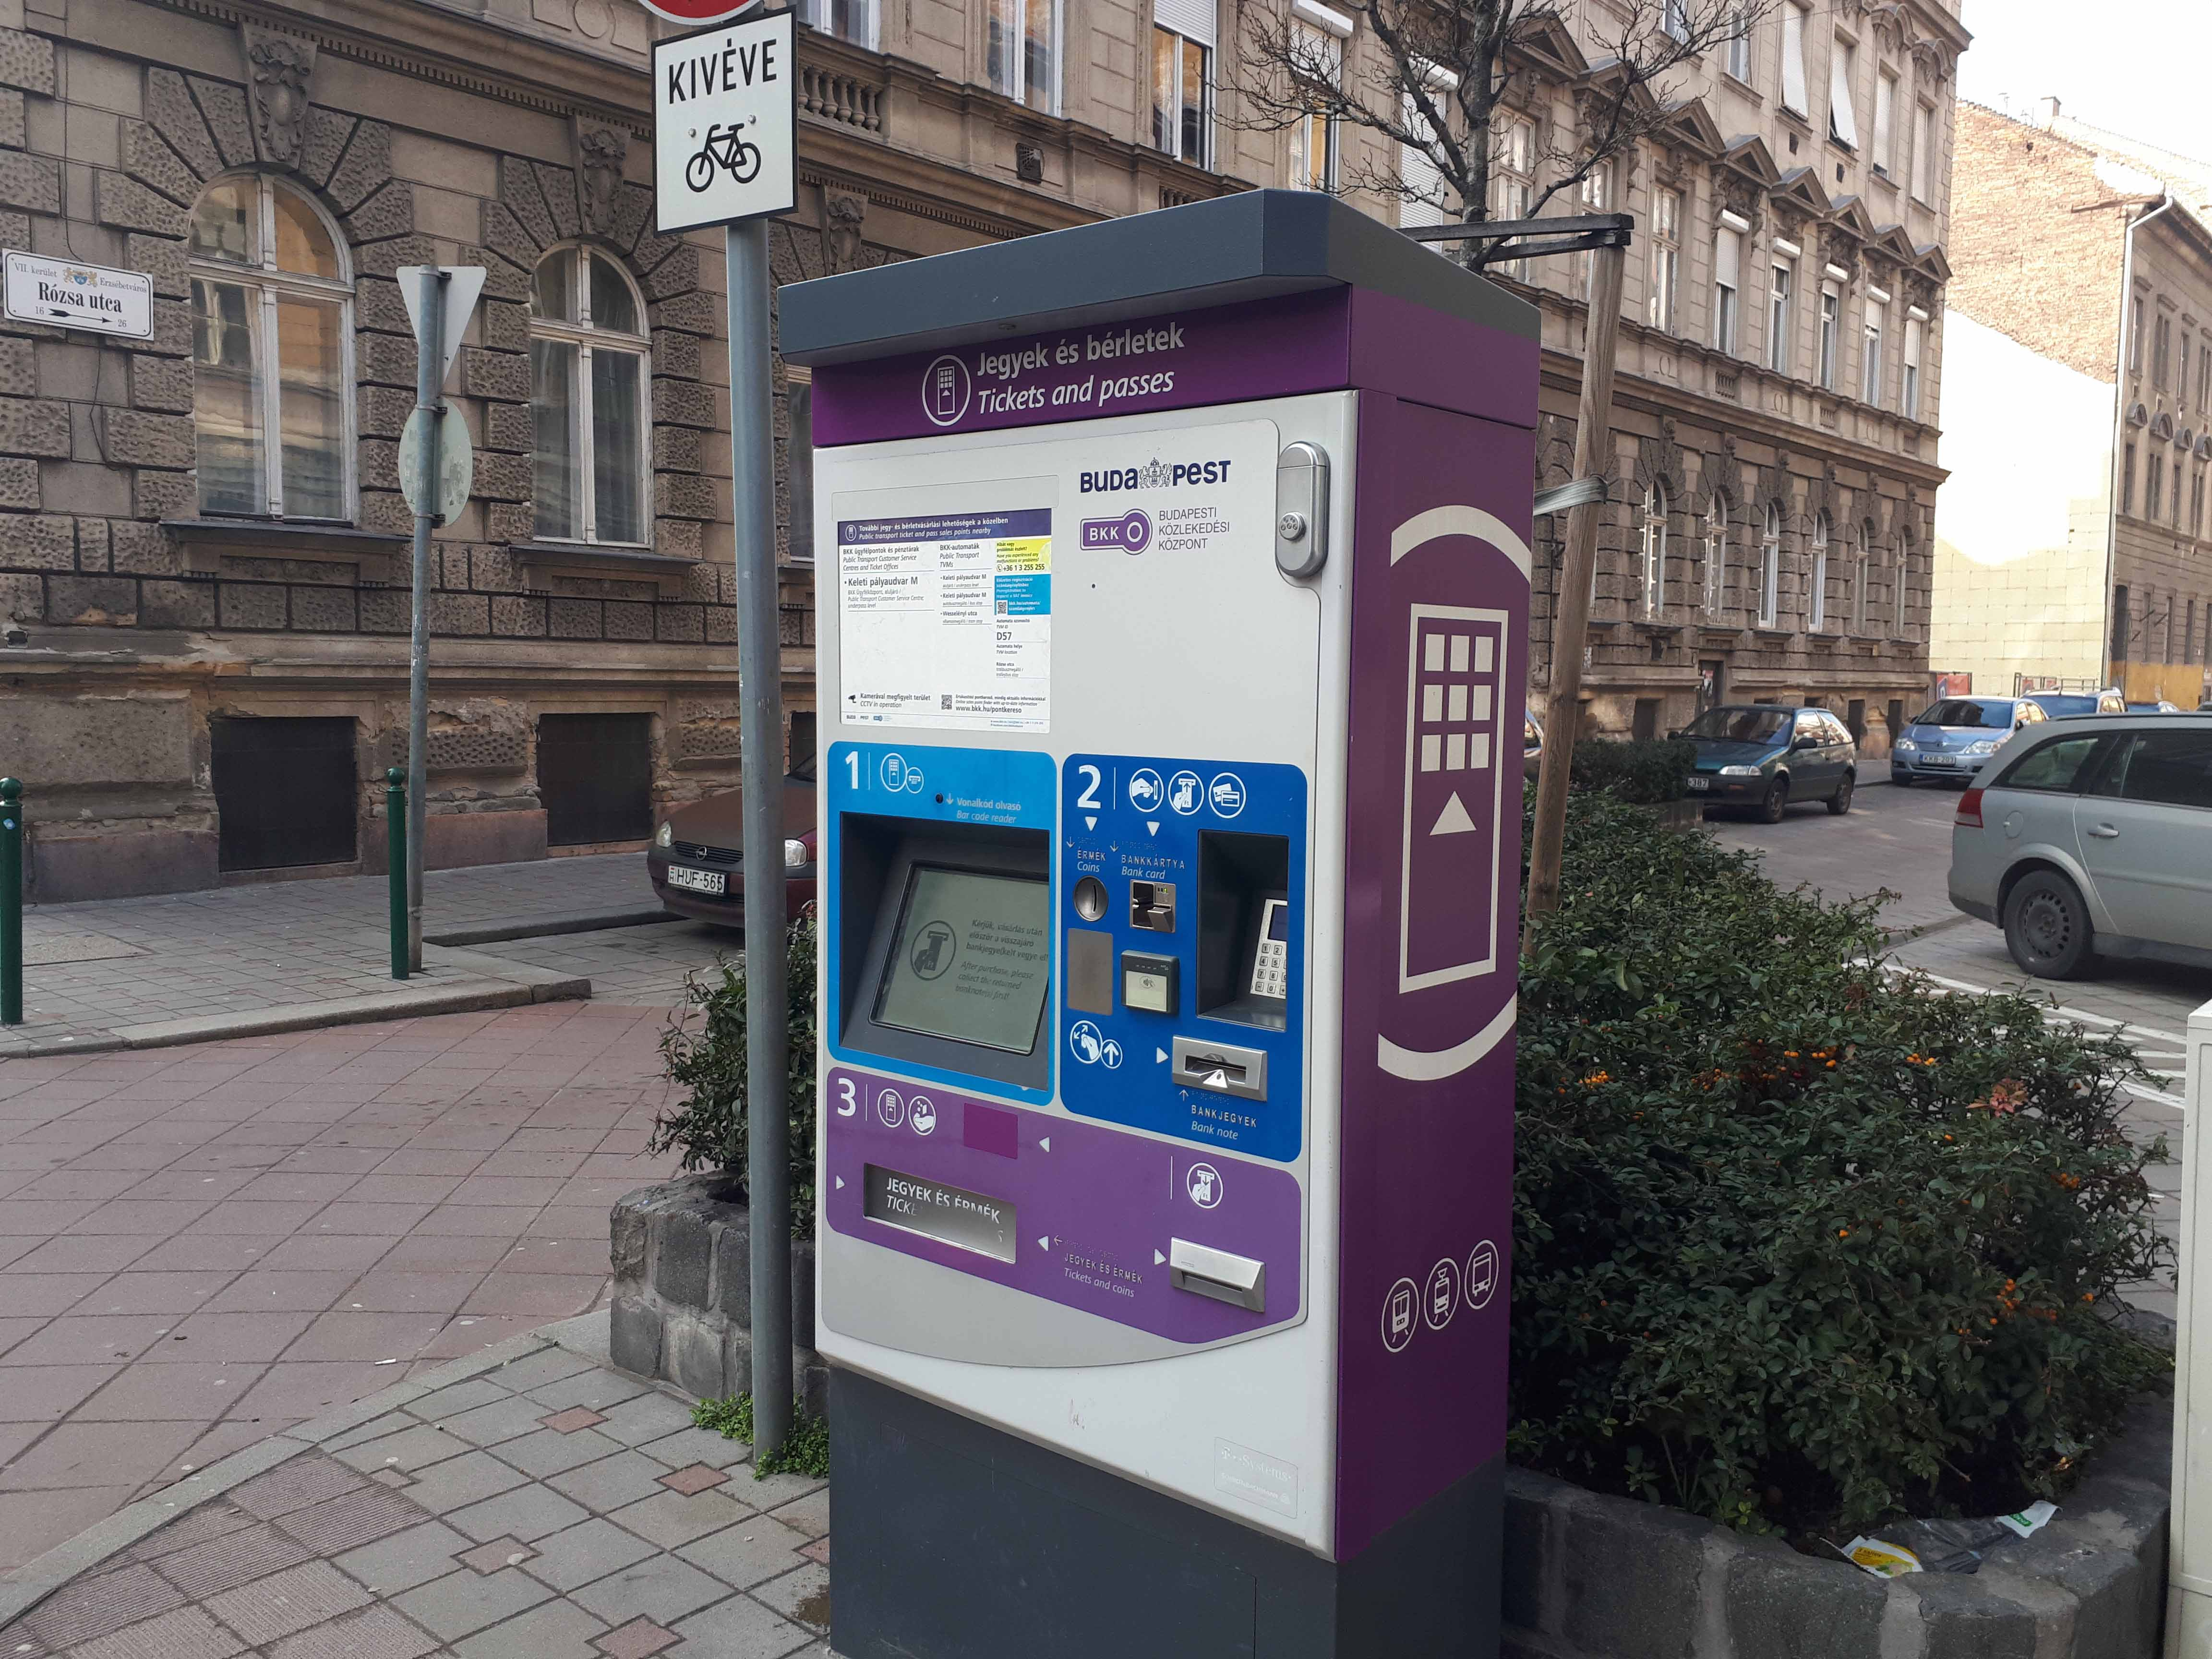 BKK ticket vending machine - your key to the public transportation in Budapest